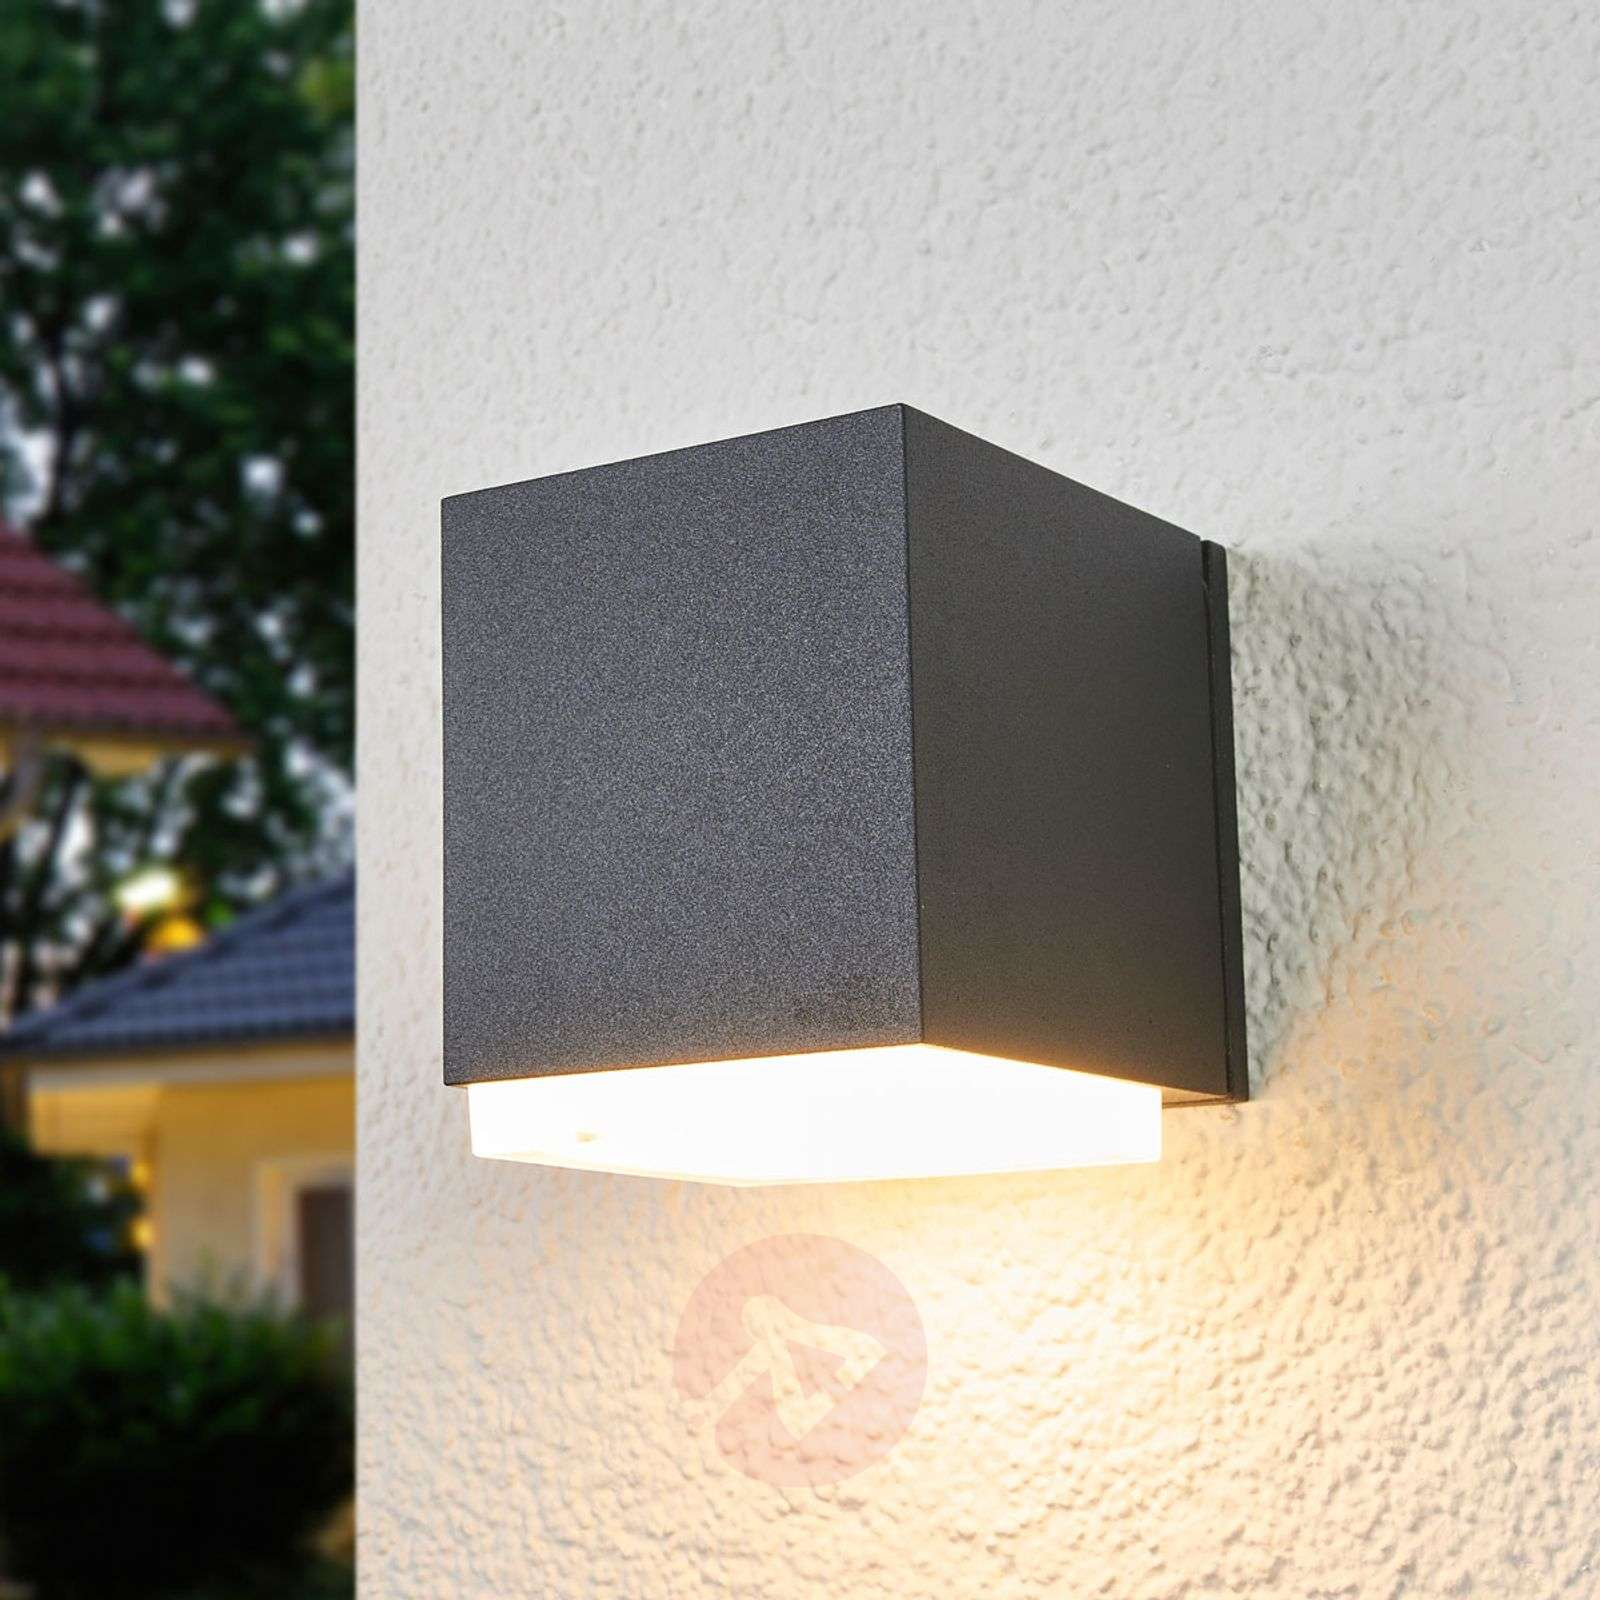 Bega cube-shaped outdoor wall lamp Ben, downwards-1566018-01